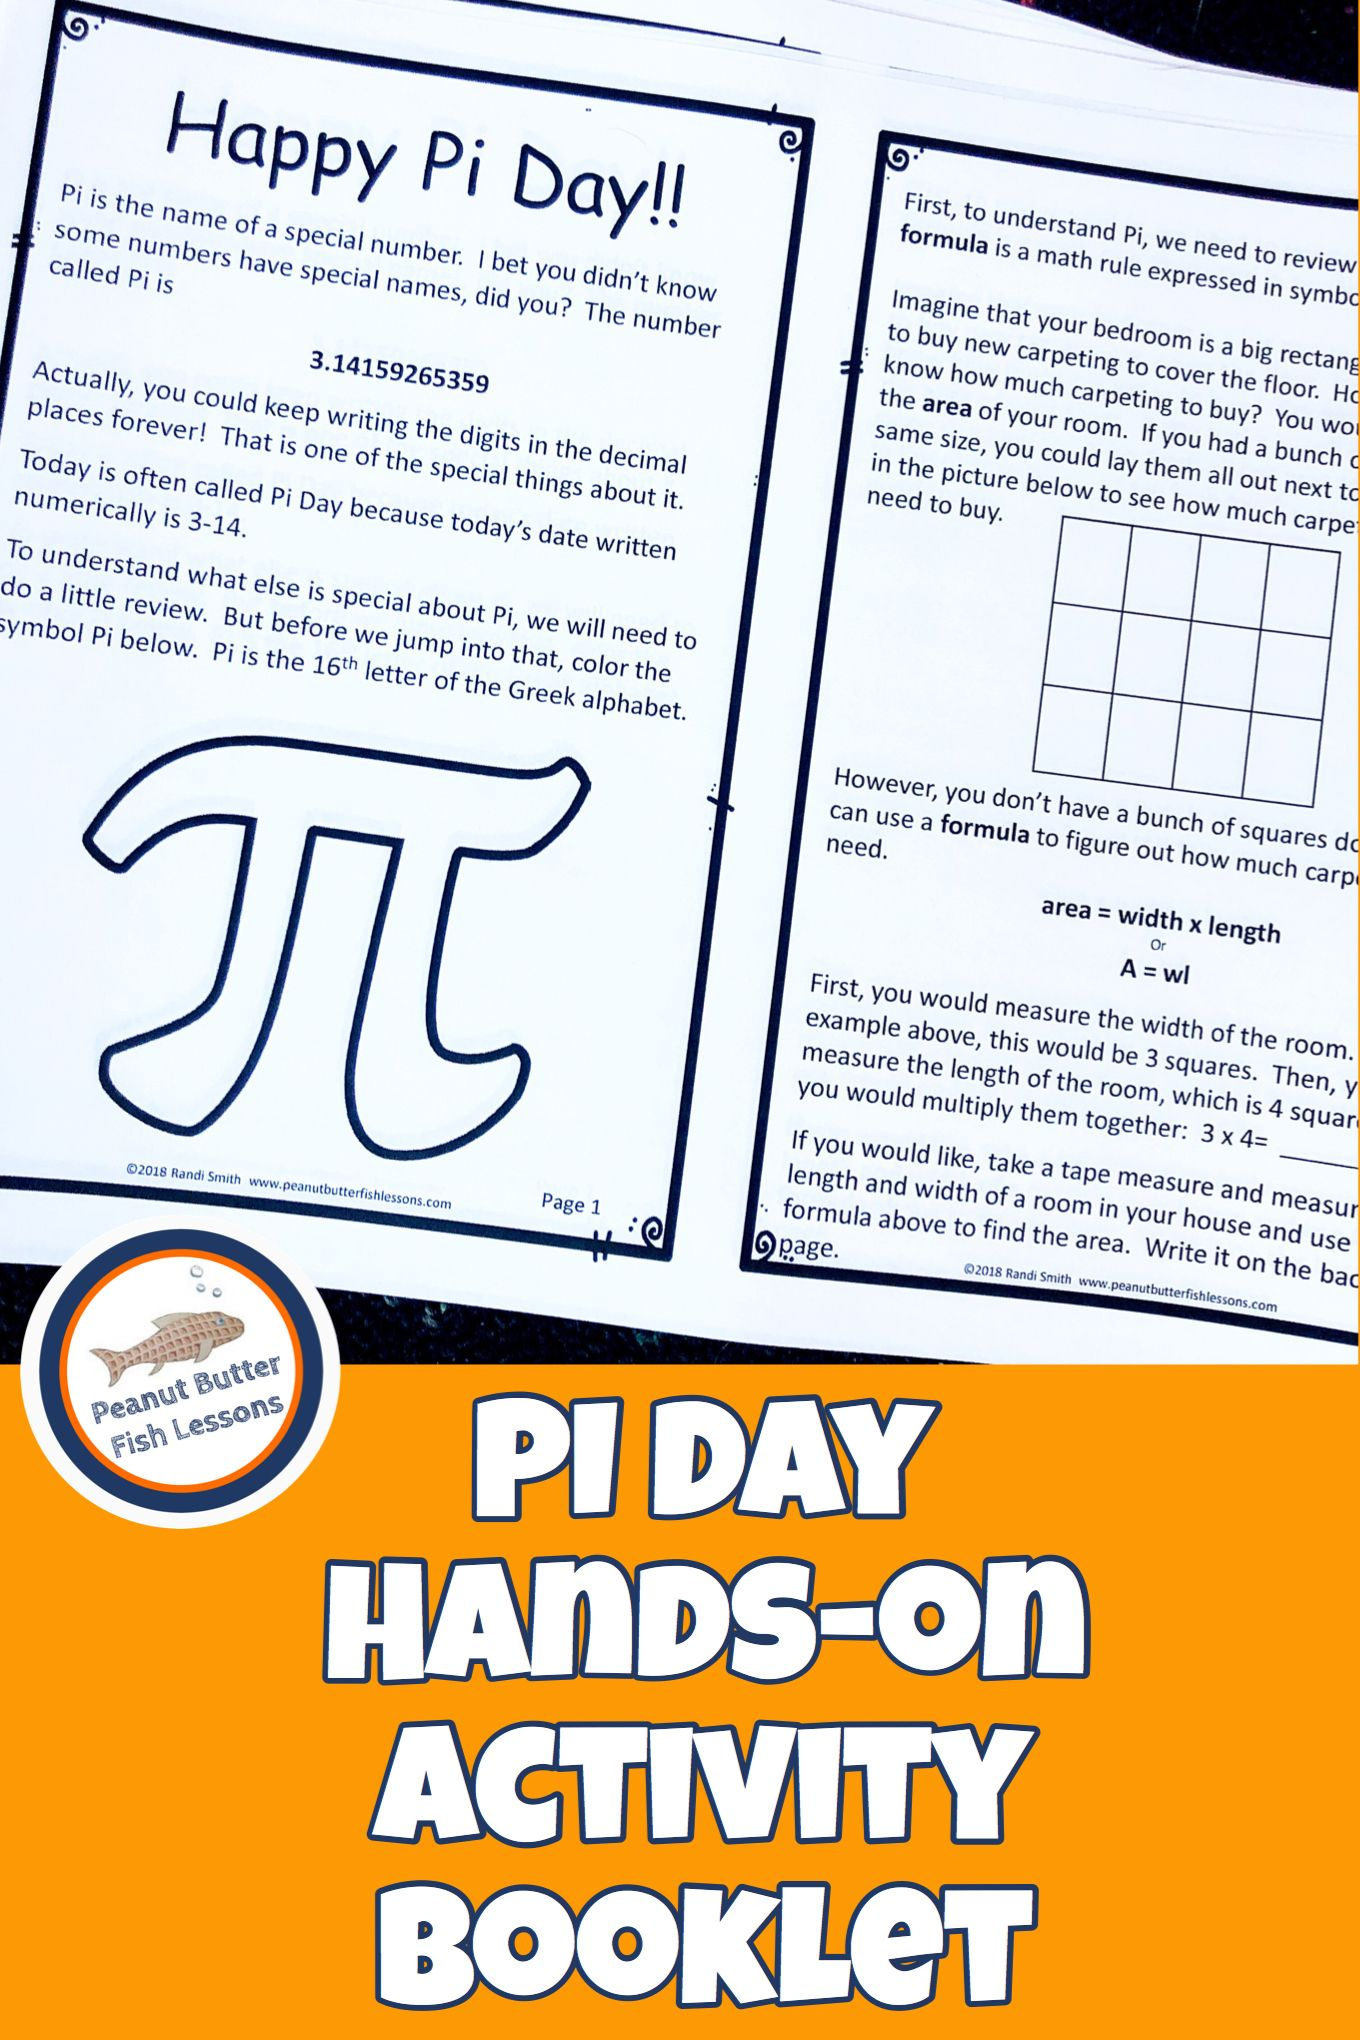 Pi Day Hands On Activity Booklet